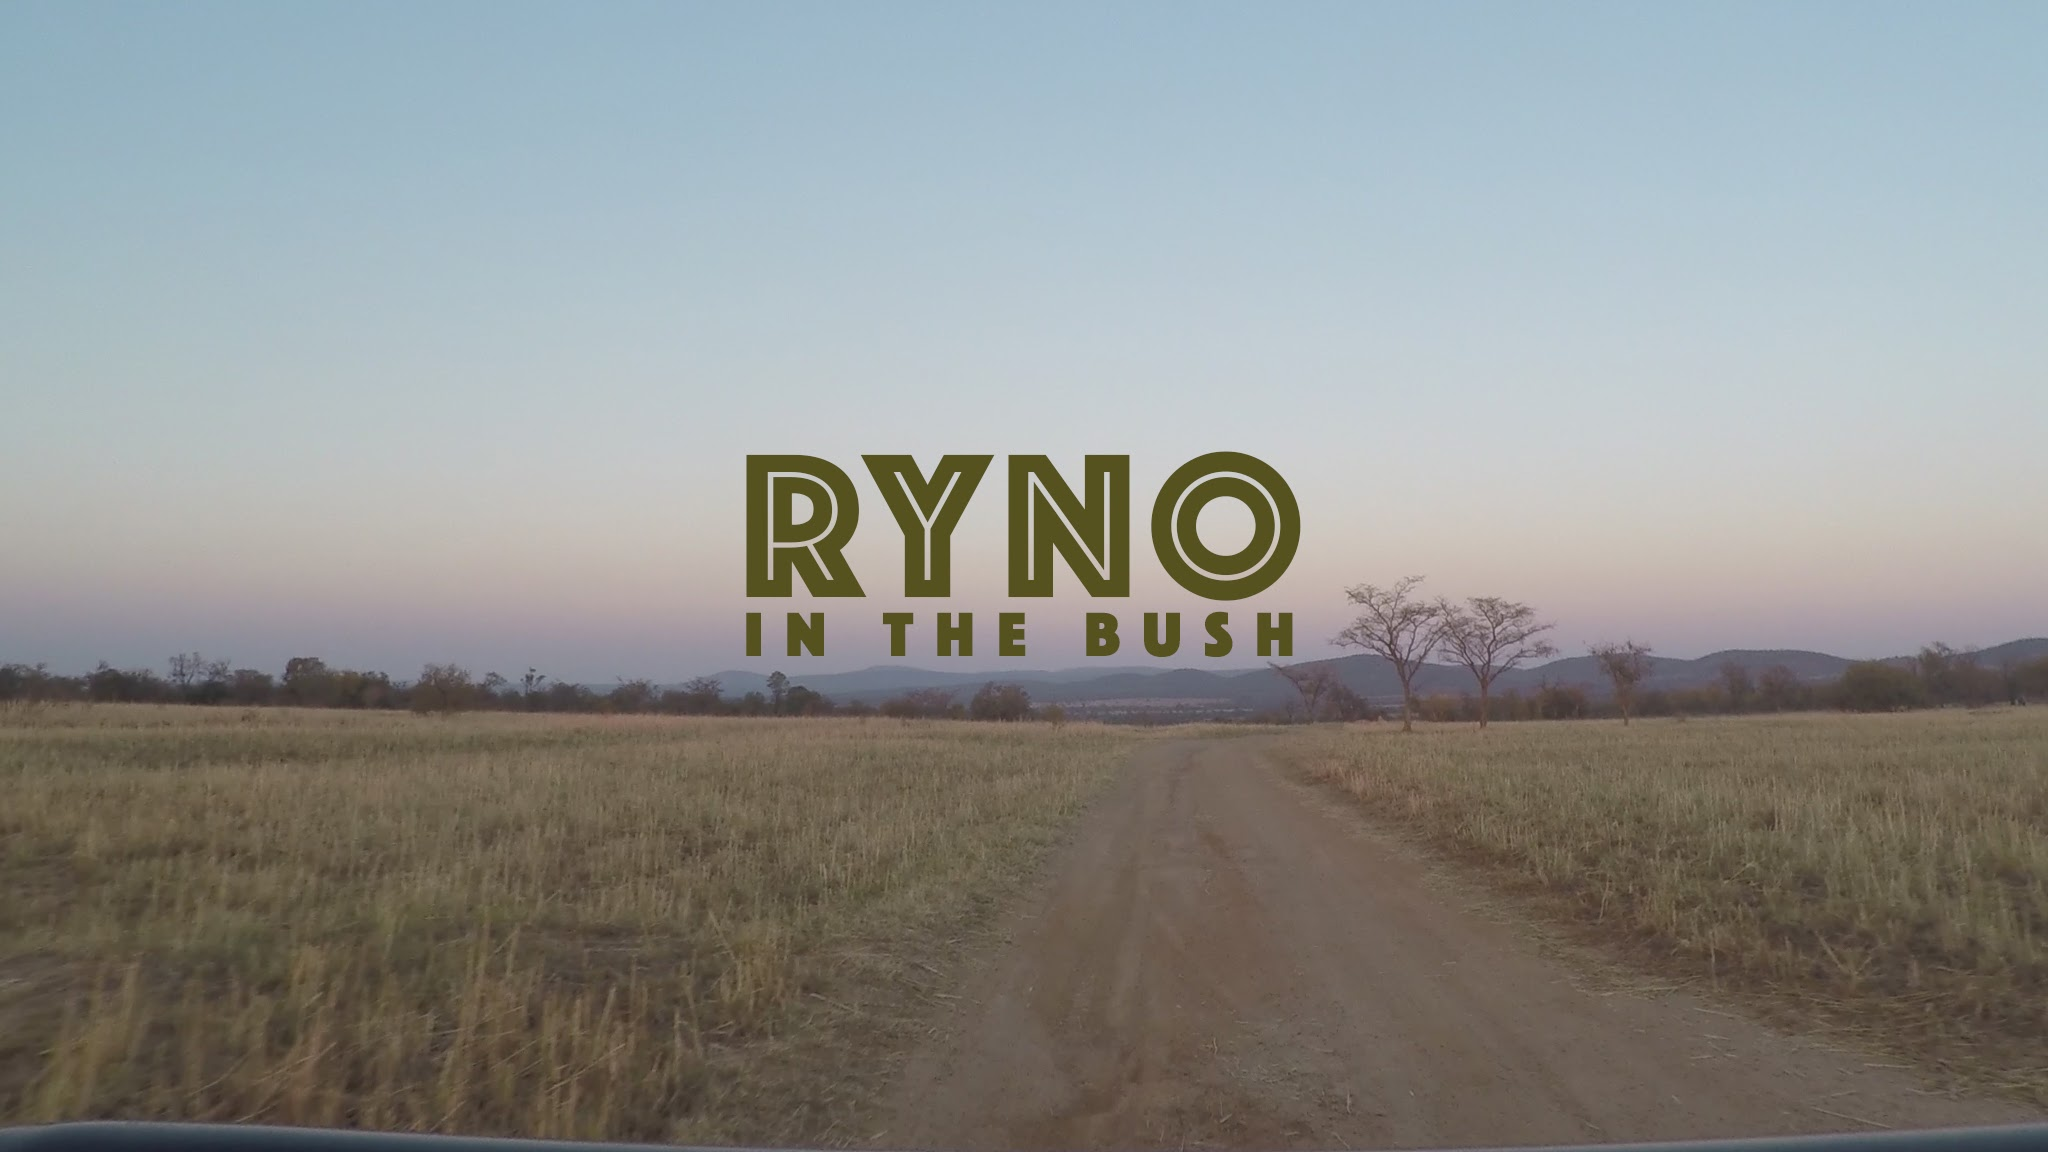 Ryno in the Bush